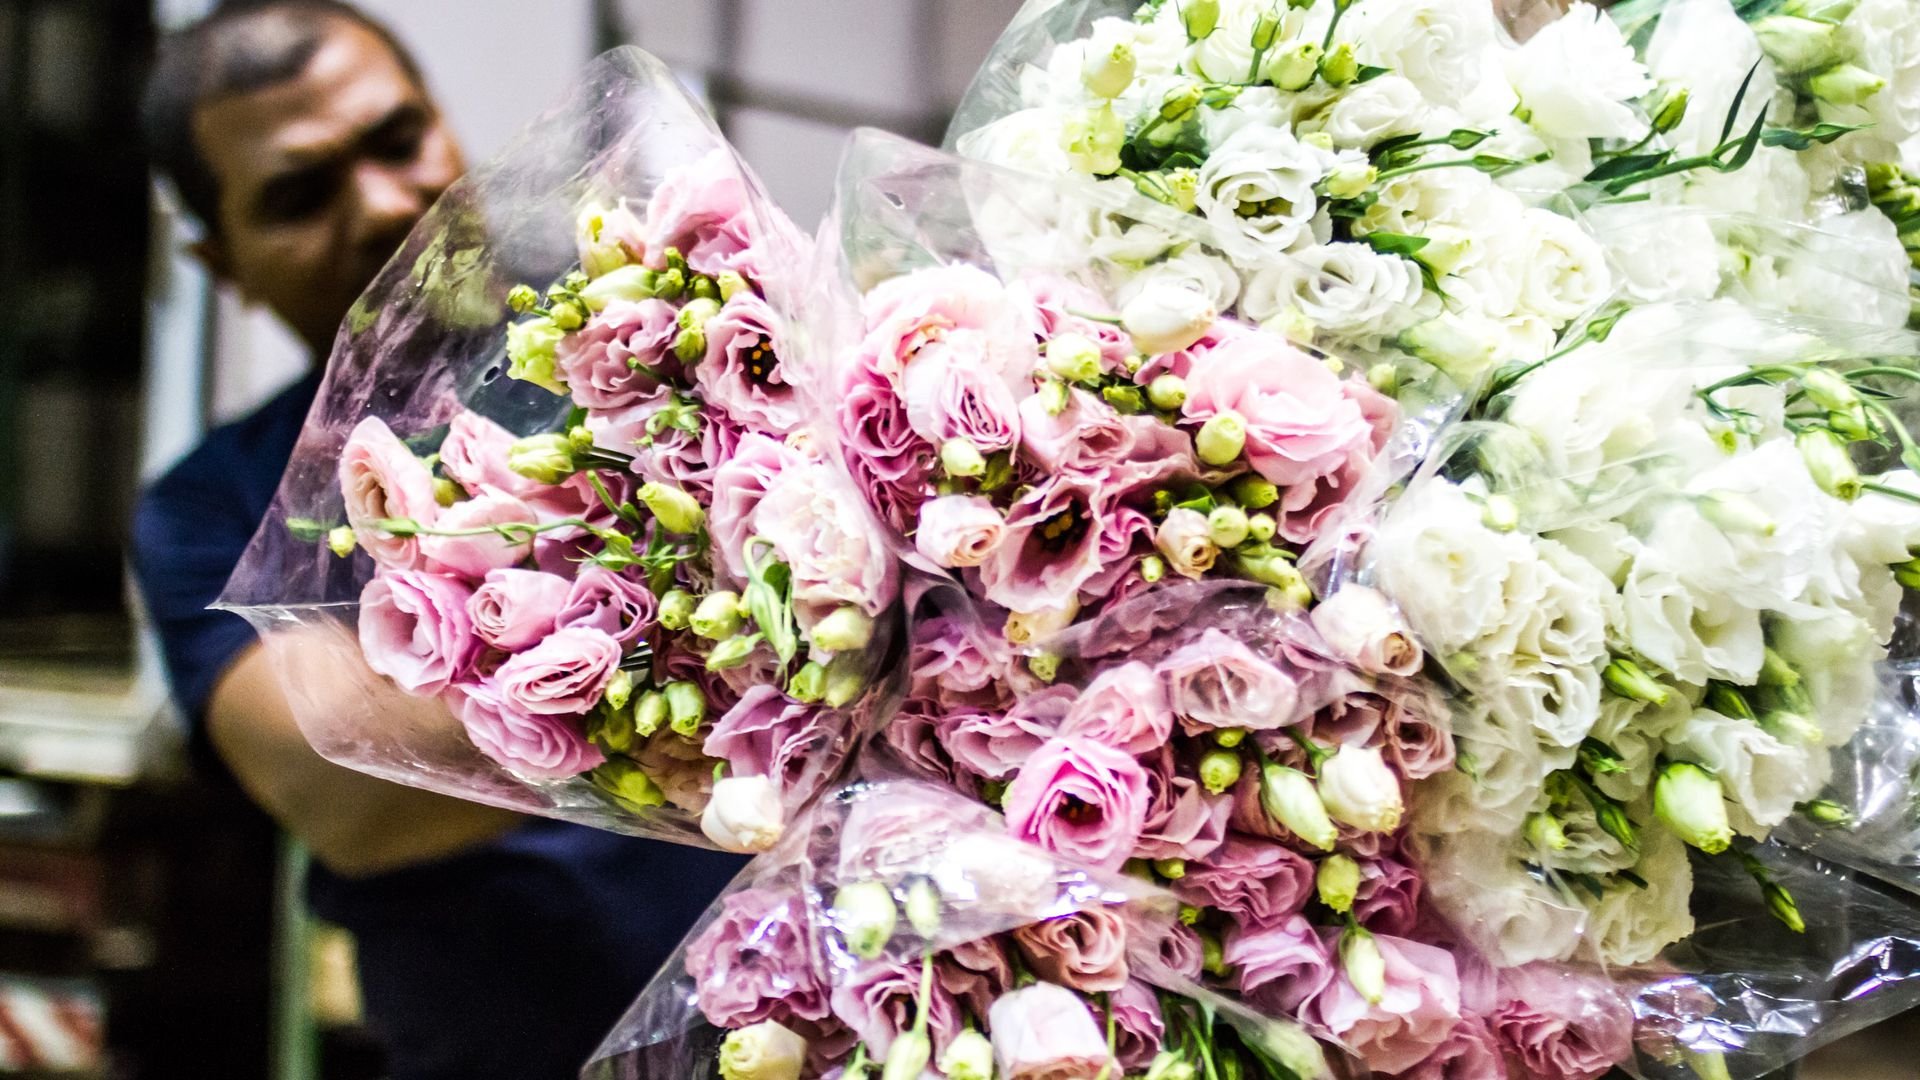 Flower delivery company FTD files for bankruptcy - Axios